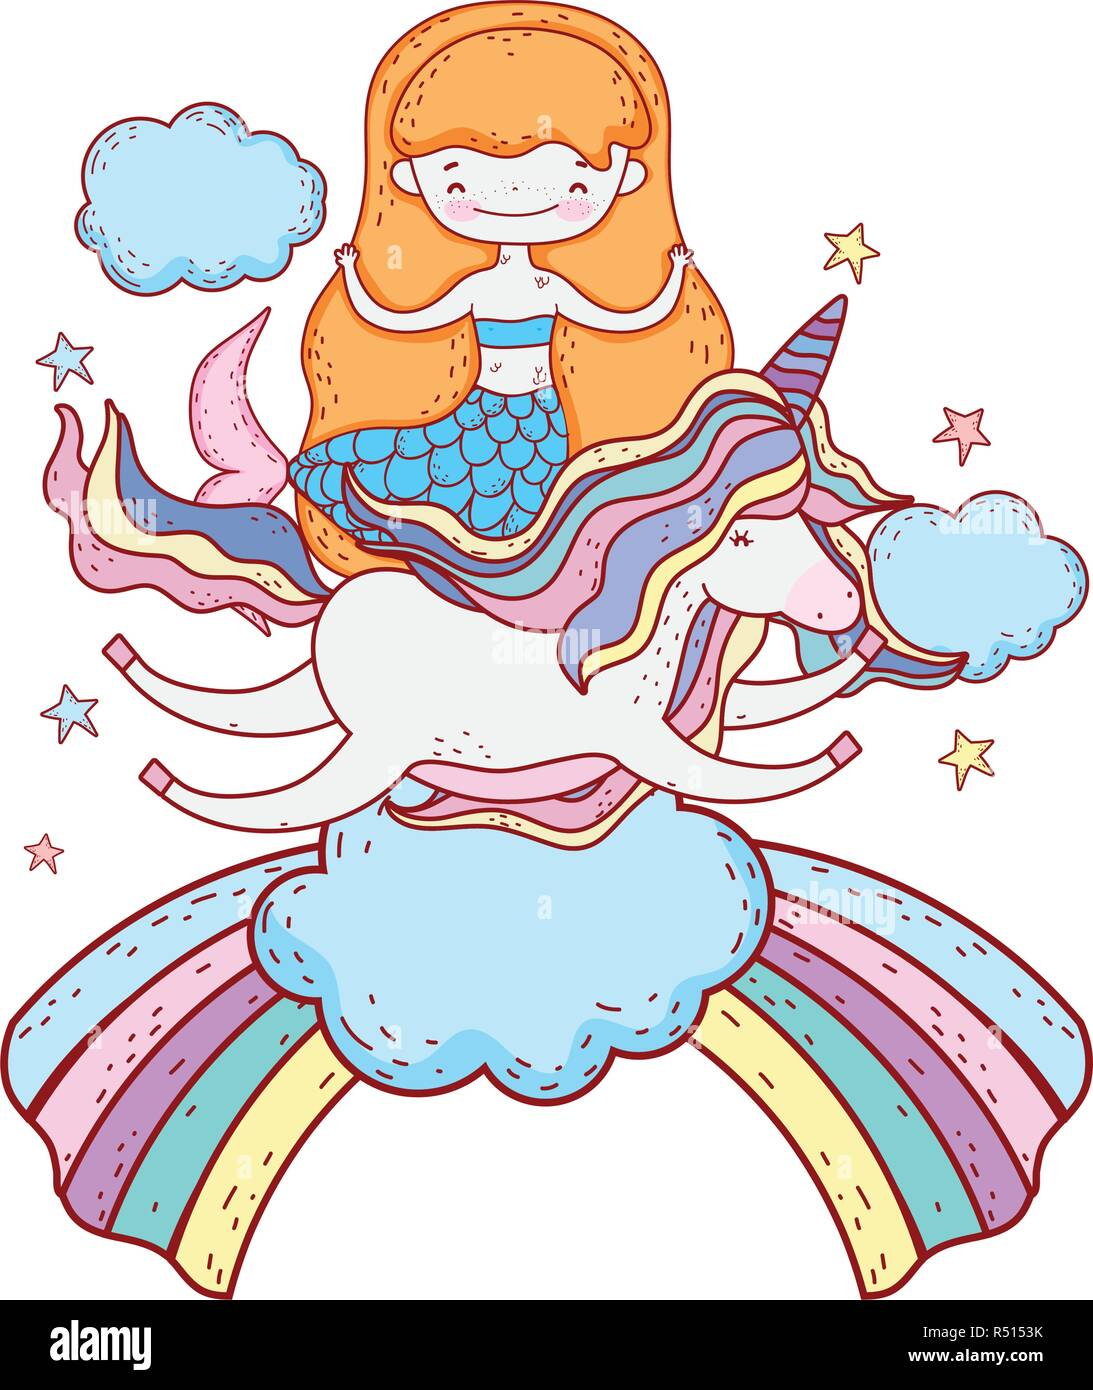 mermaid with unicorn and rainbow in clouds - Stock Image